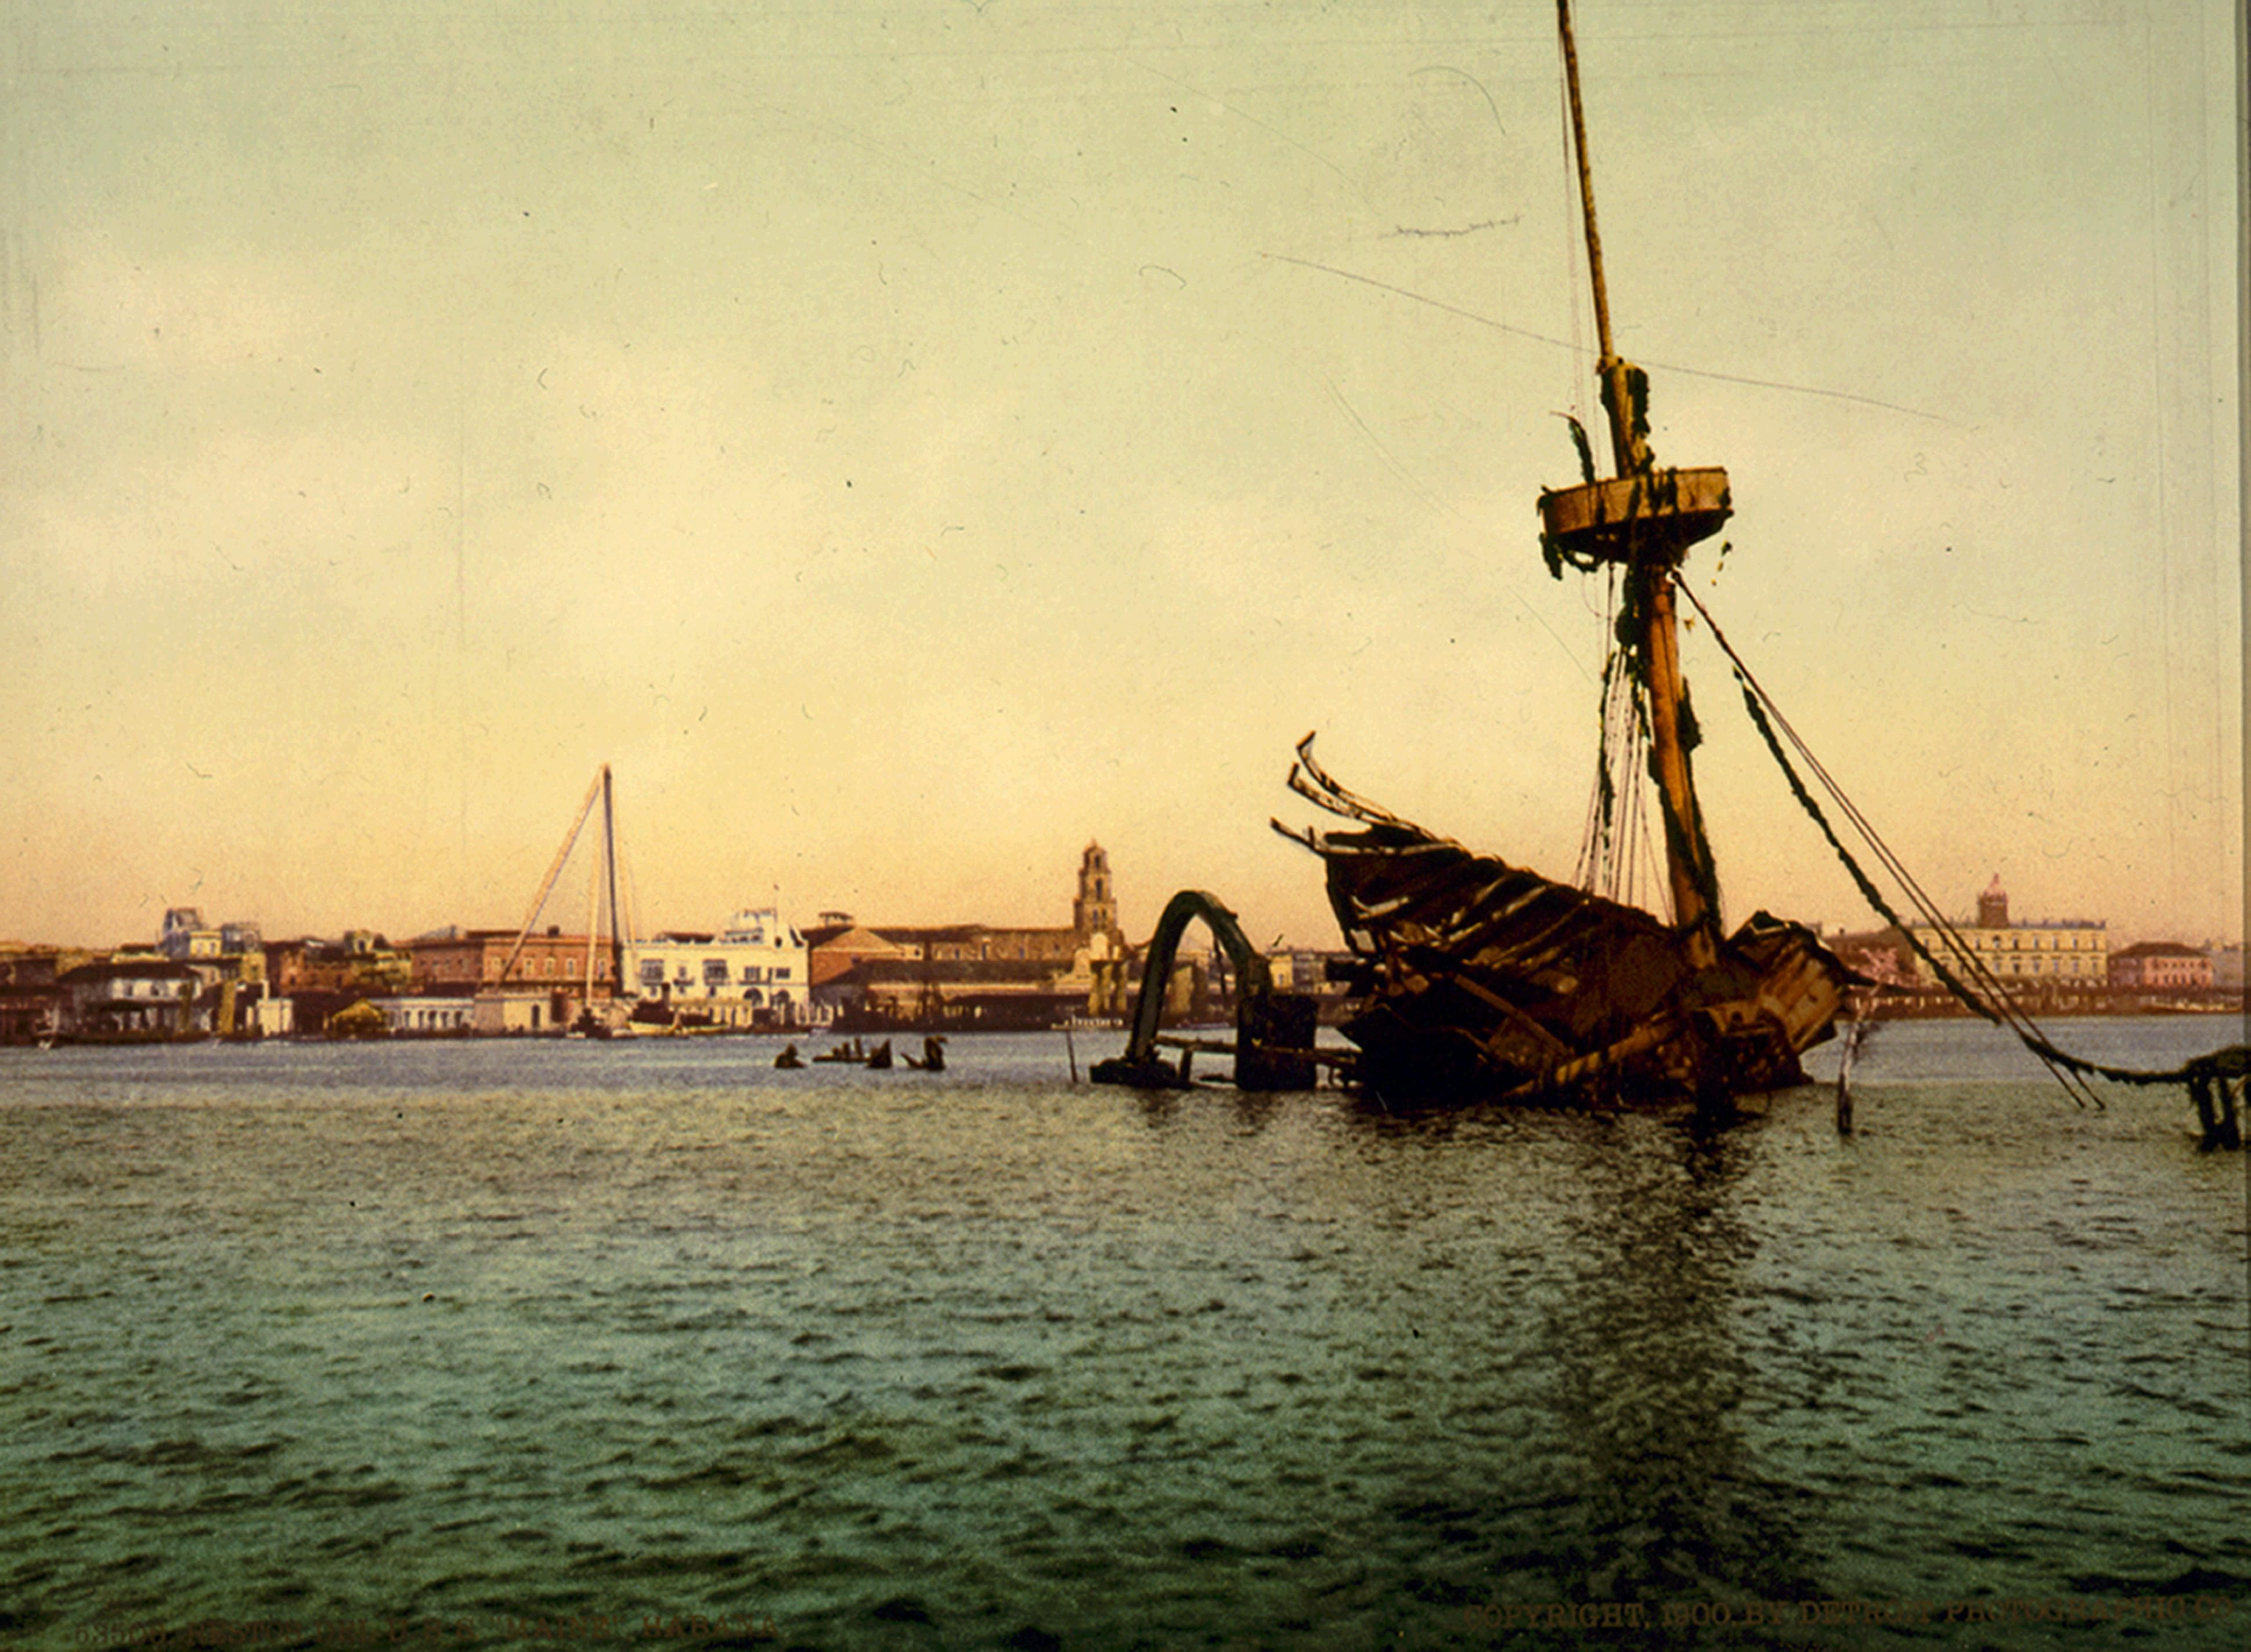 Wreck of the USS Maine in Havana Harbor That Led to the Spanish American War.